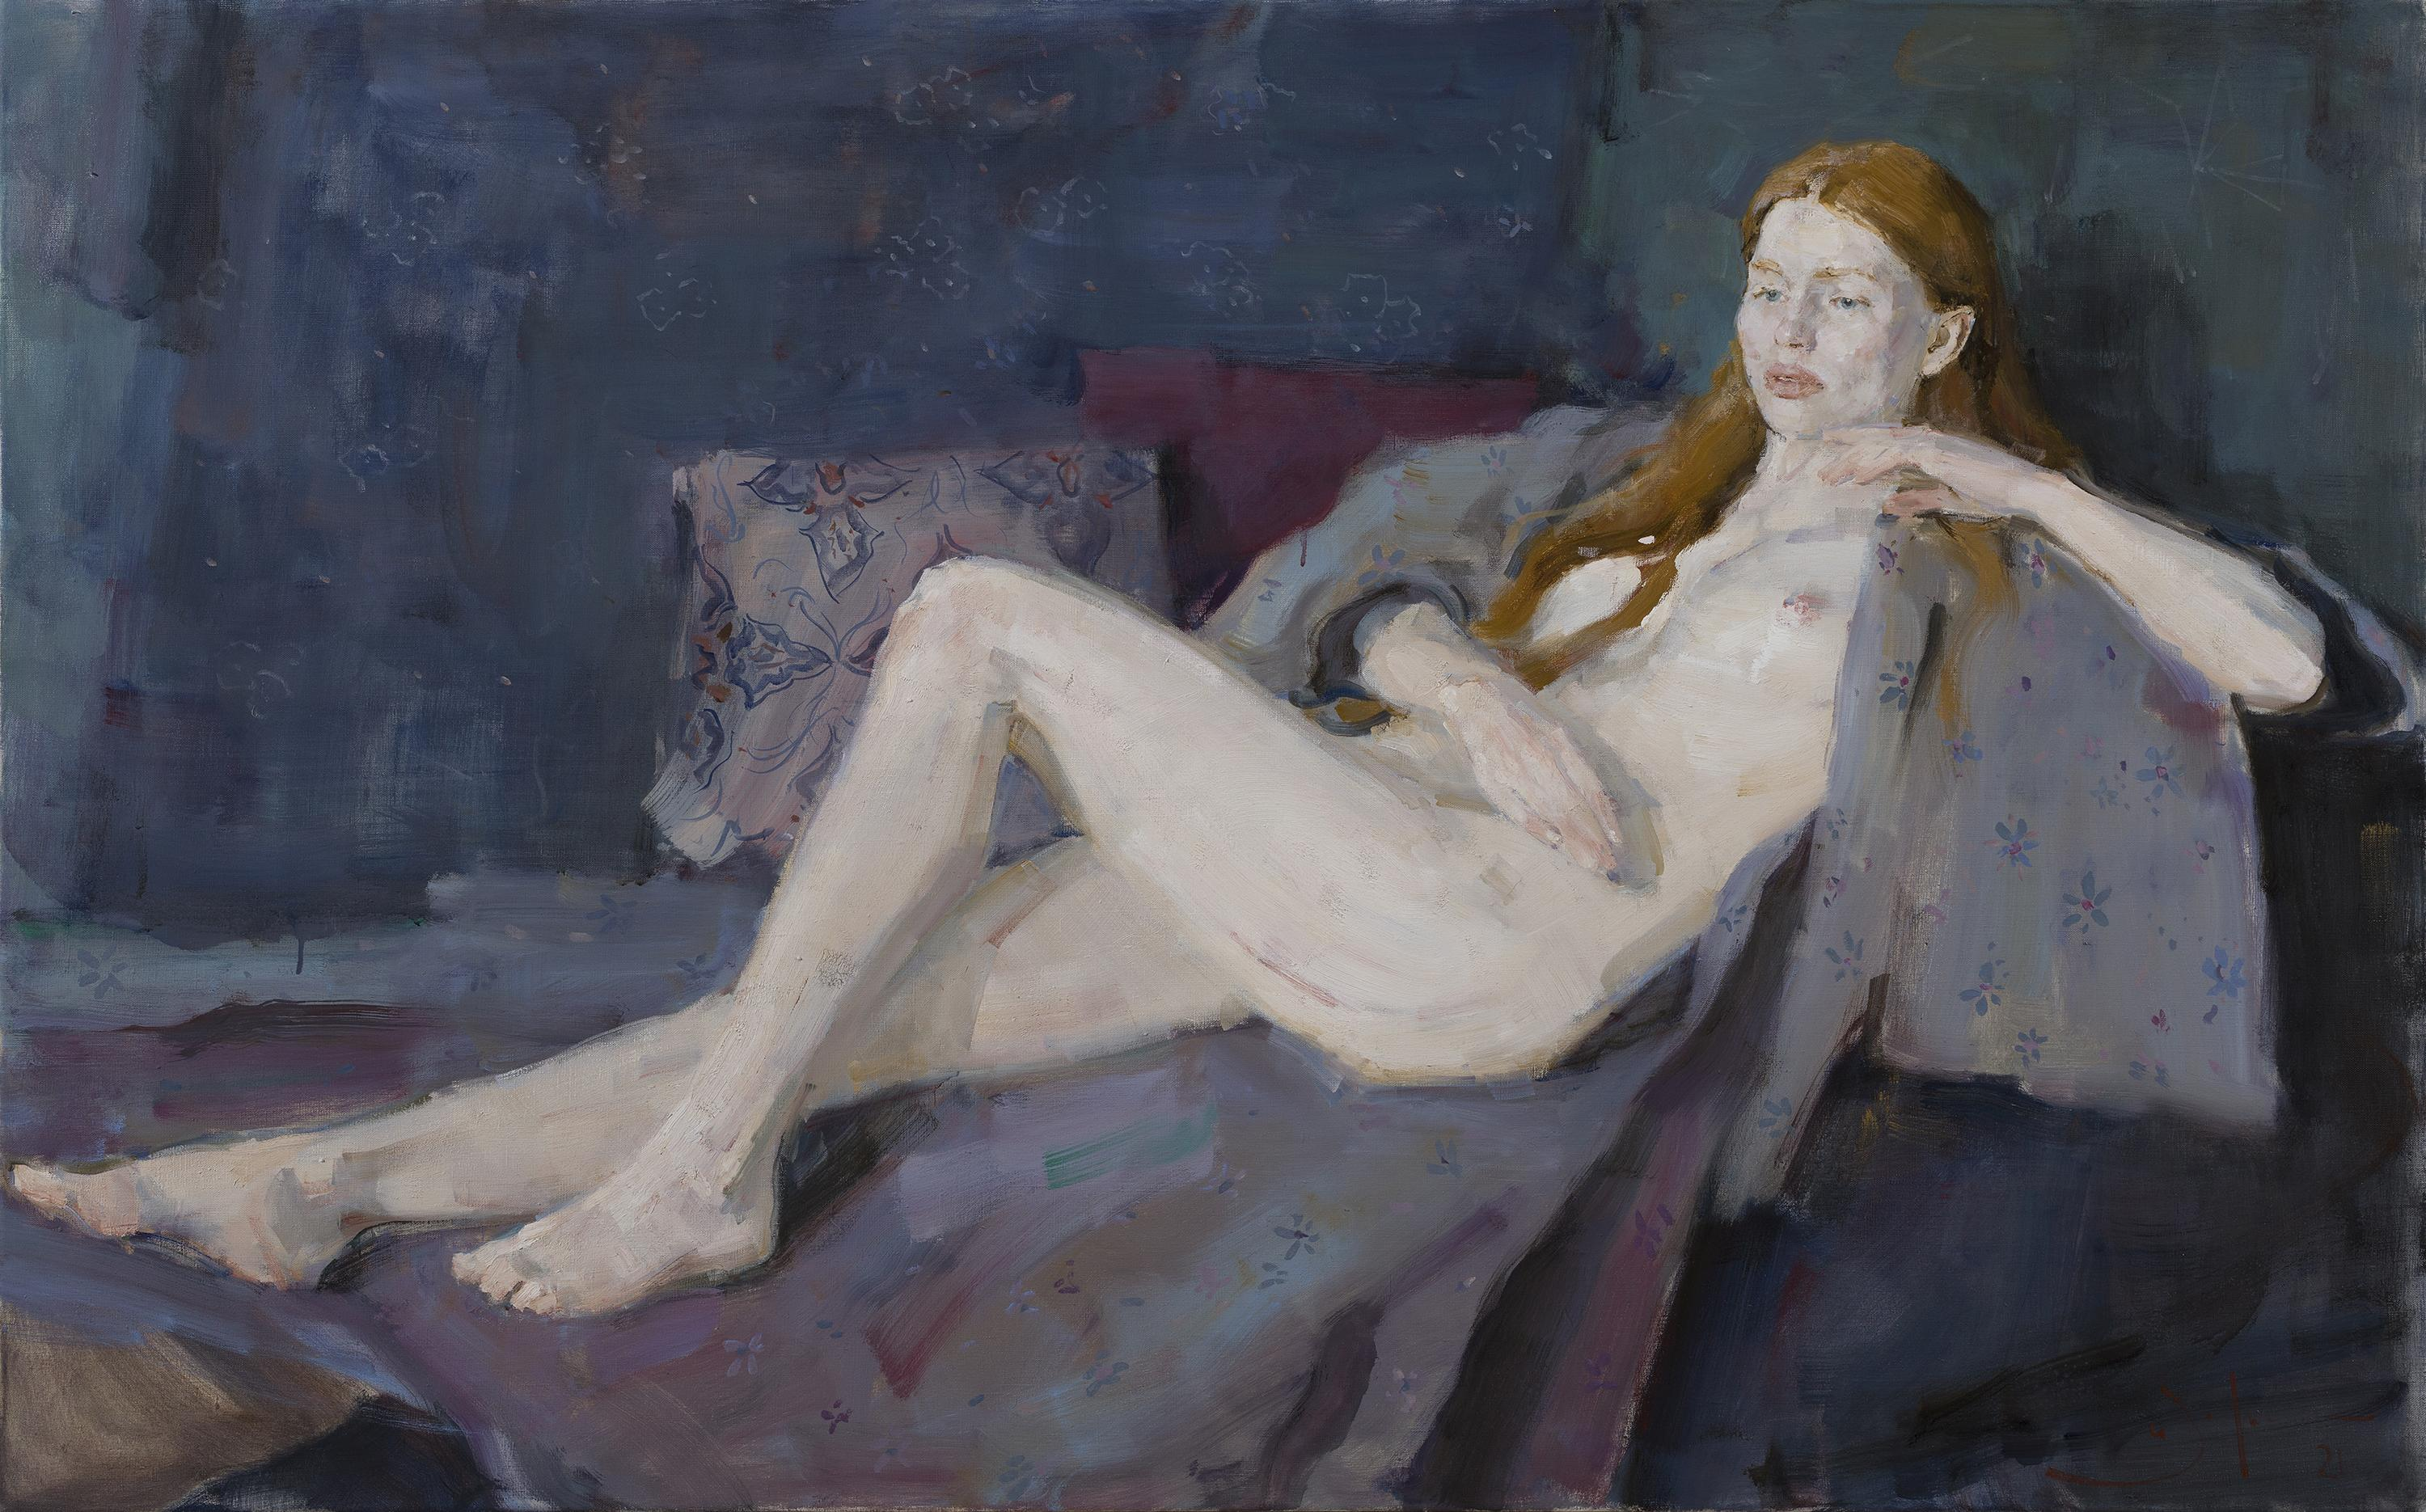 Nude - 21st Century Contemporary Large Figure Oil Painting